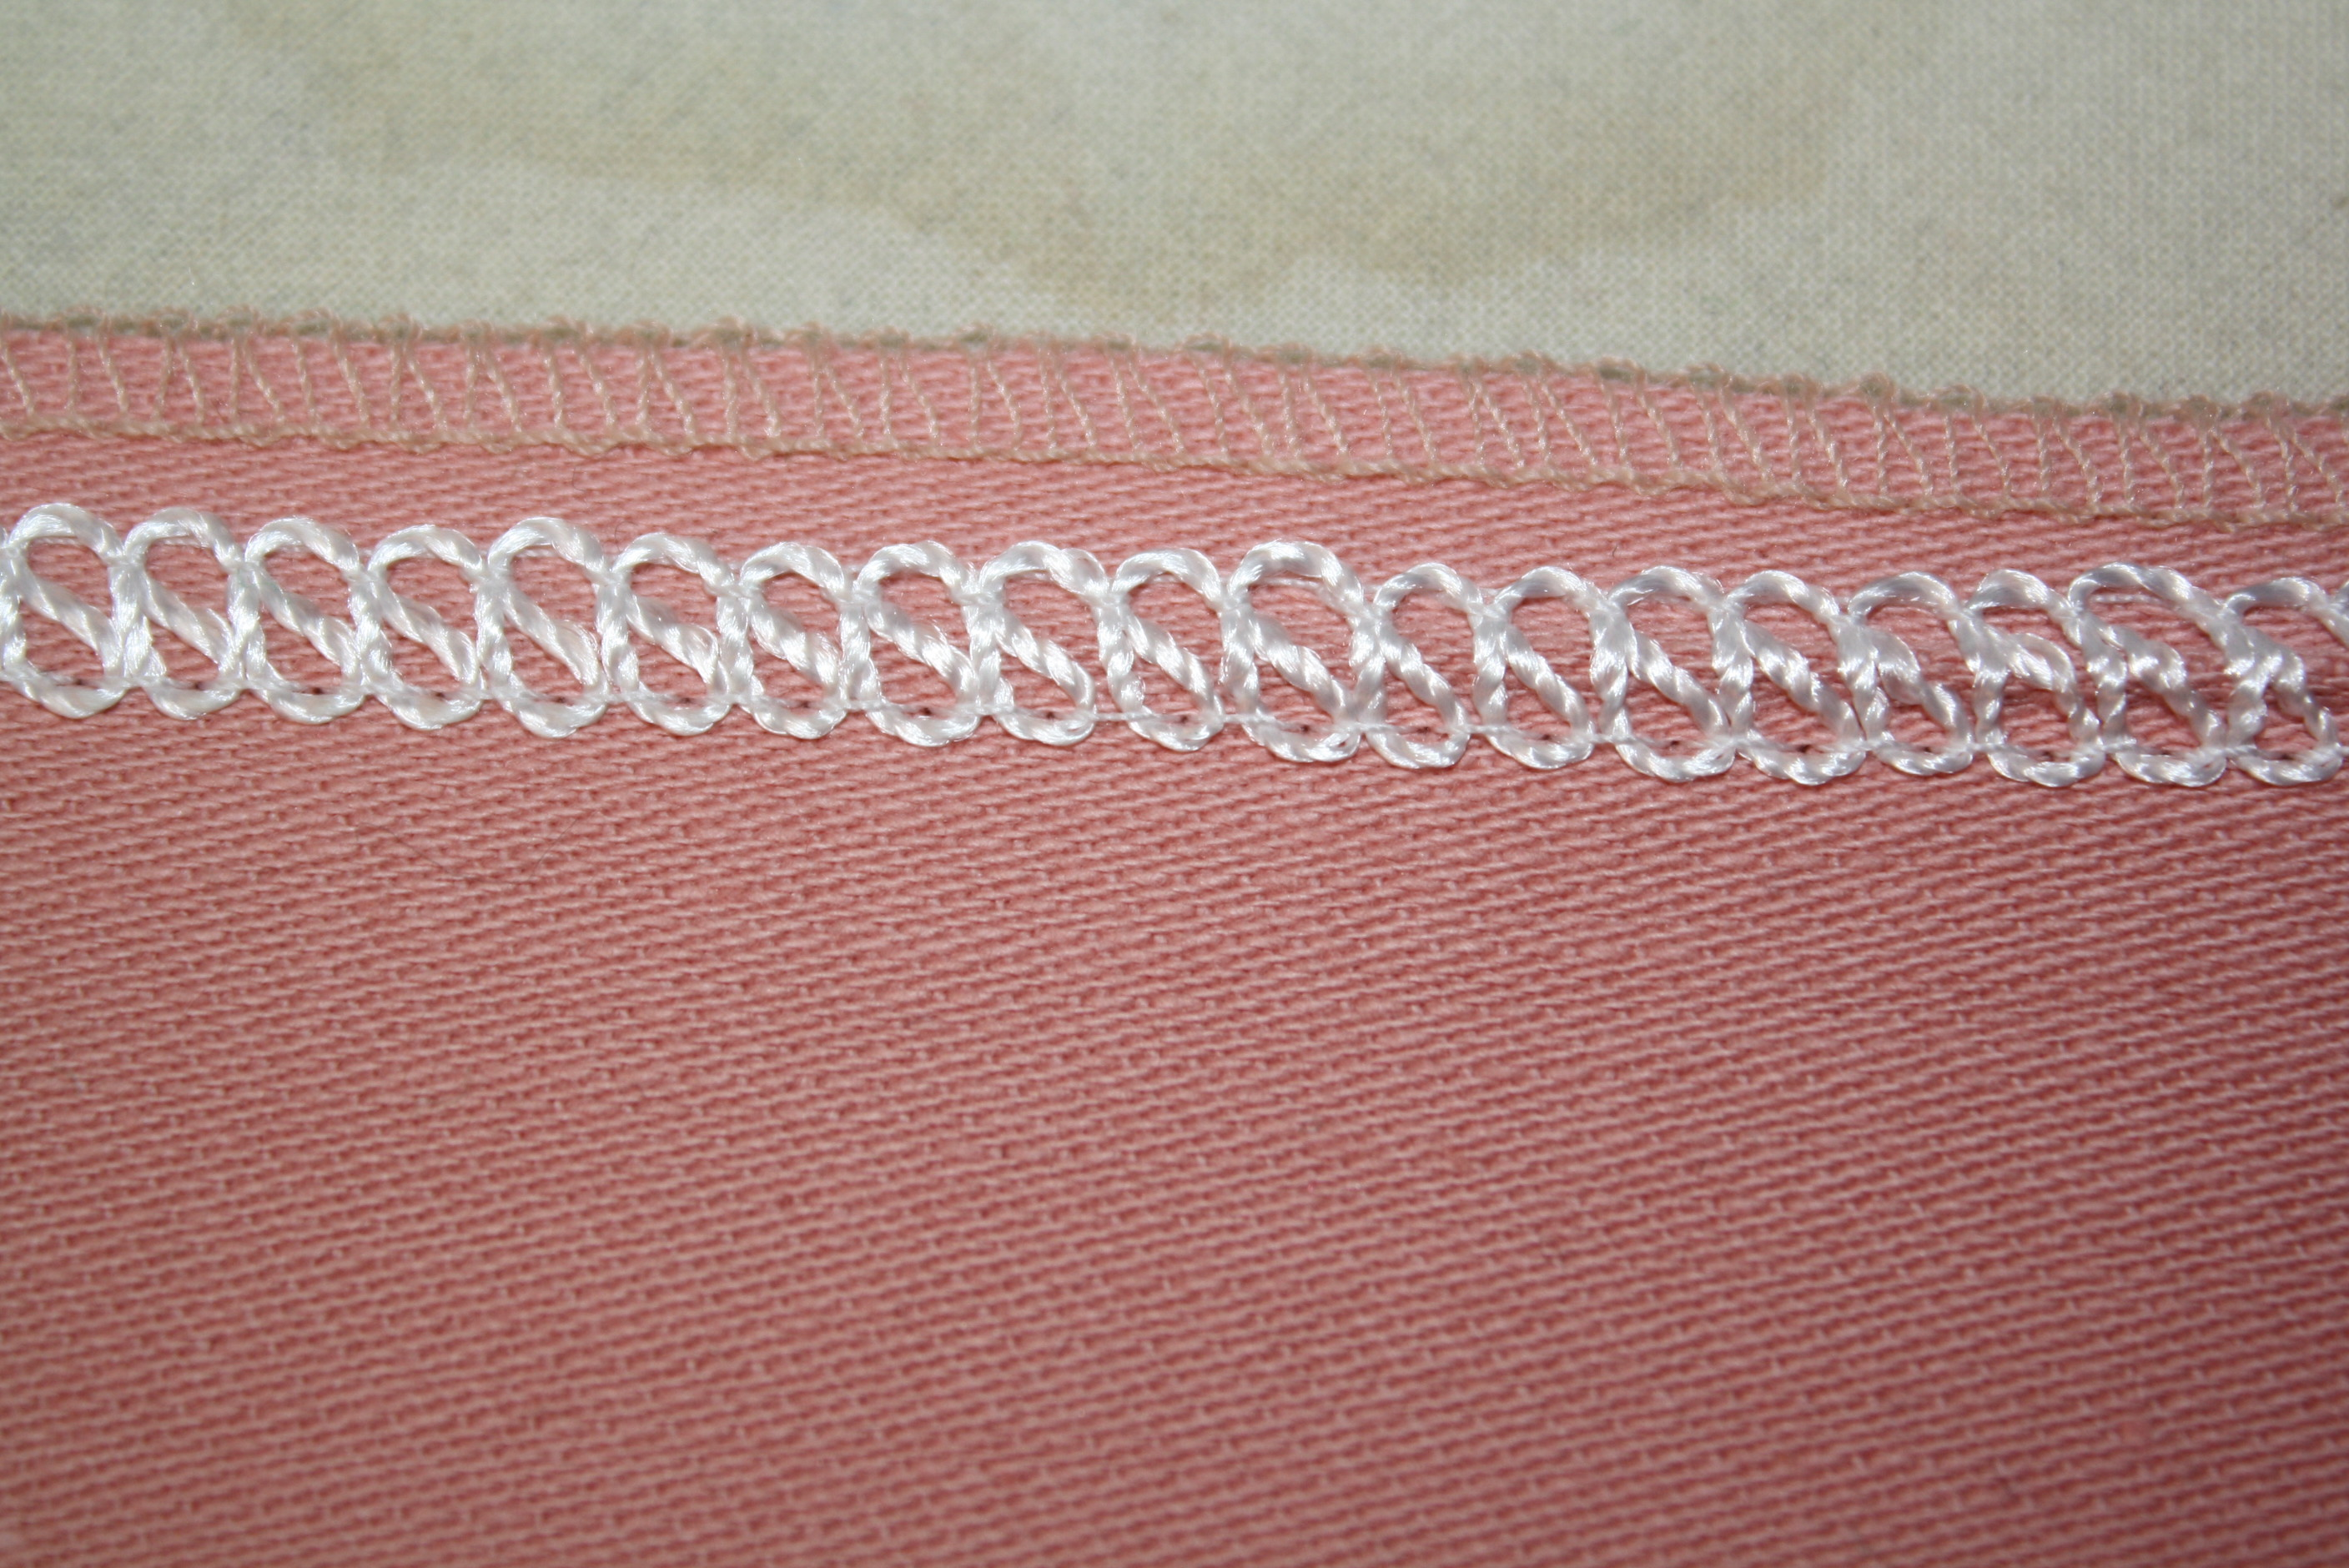 flat lock stitching with Angela Wolf